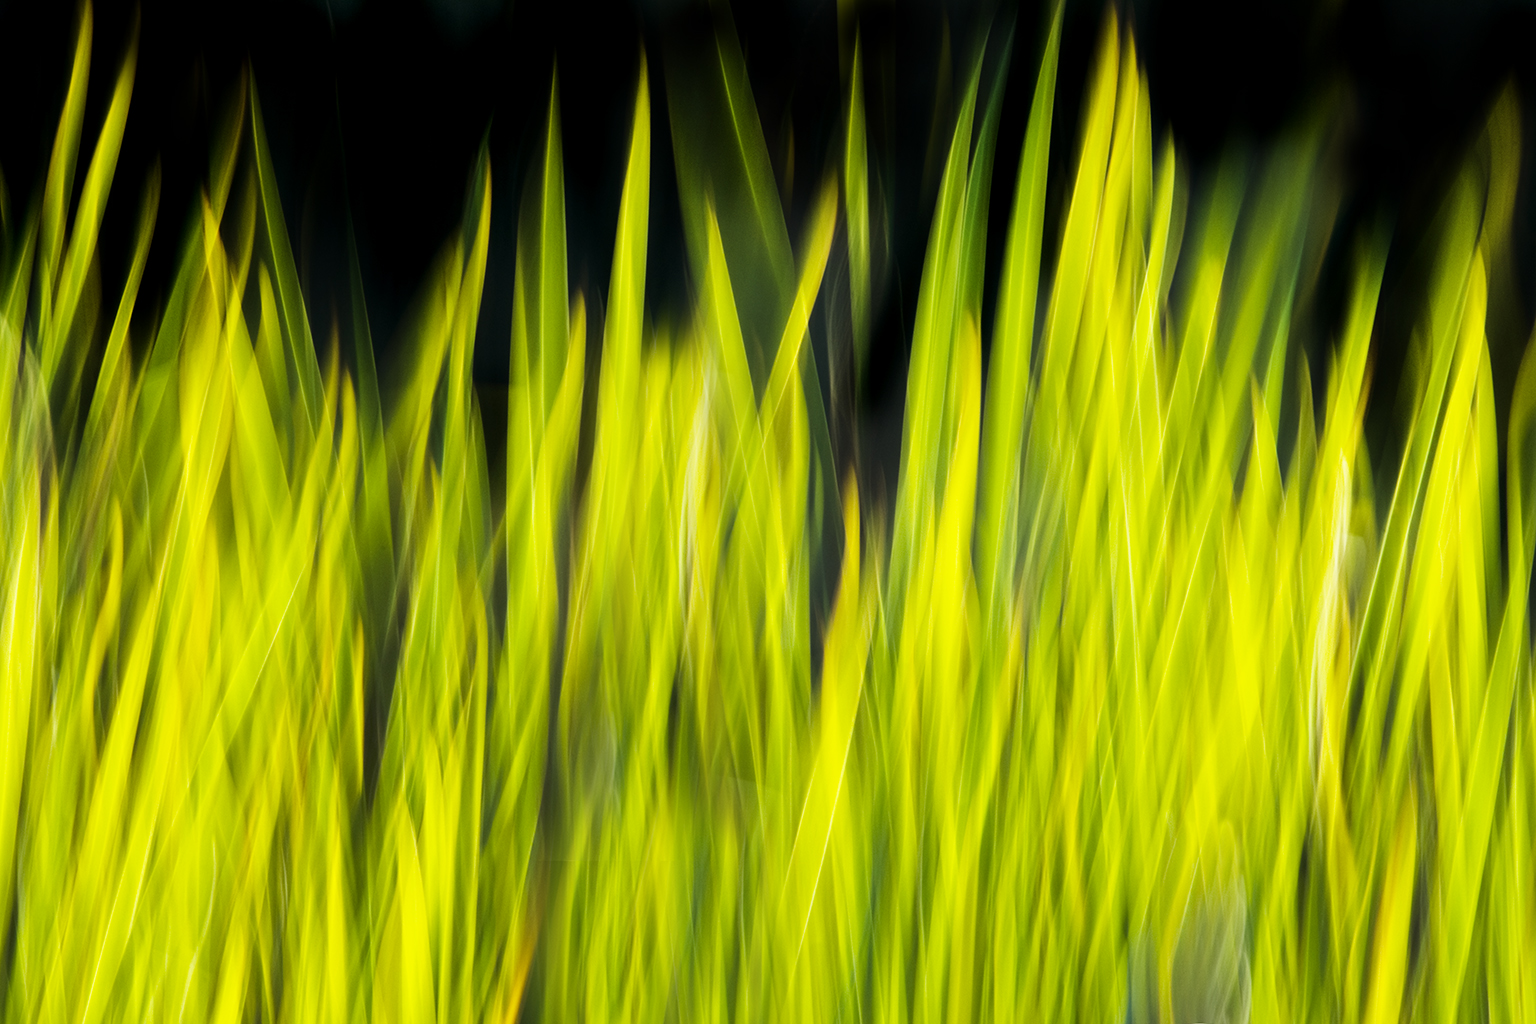 GRASS ESSENCE IV